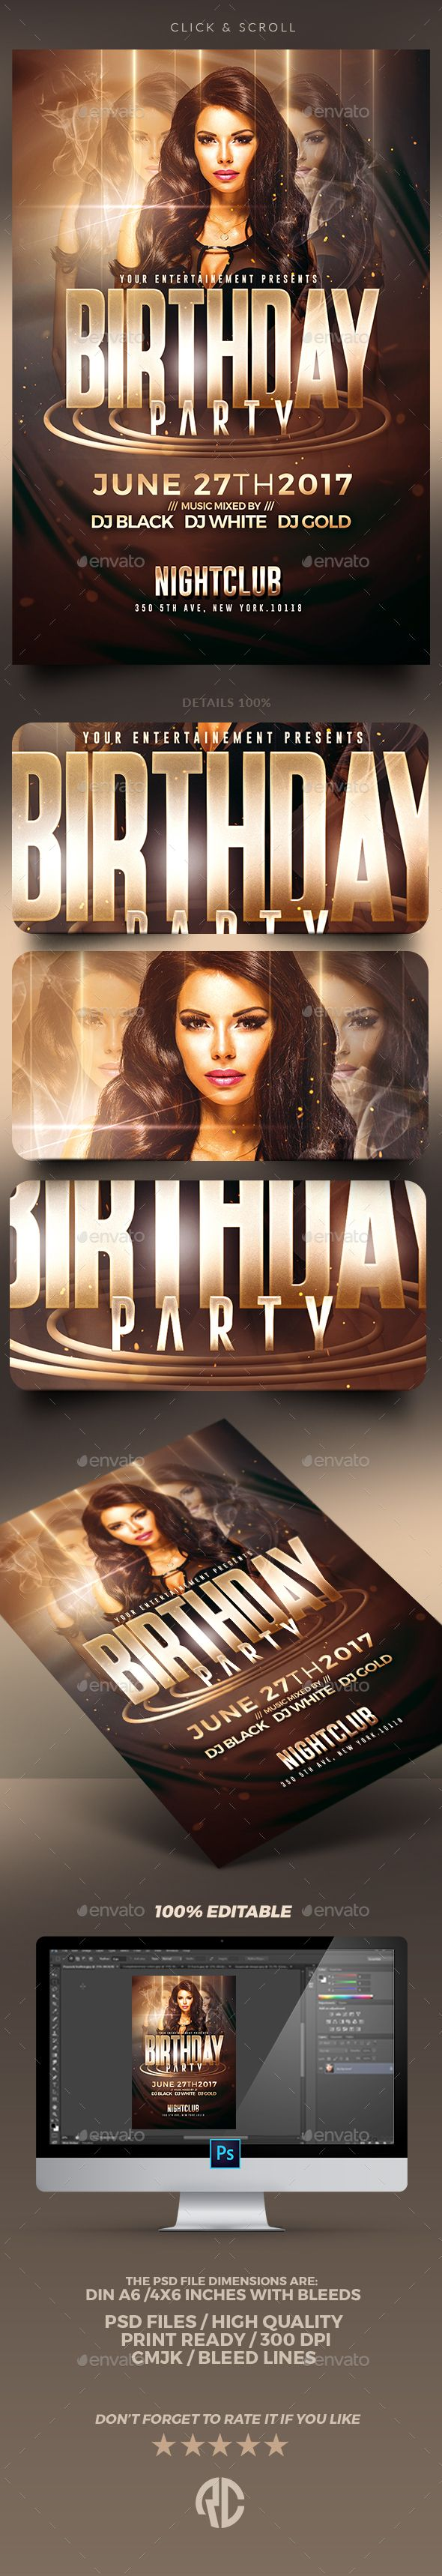 Birthday Party  Psd Flyer Templates  Flyer Template Psd Flyer